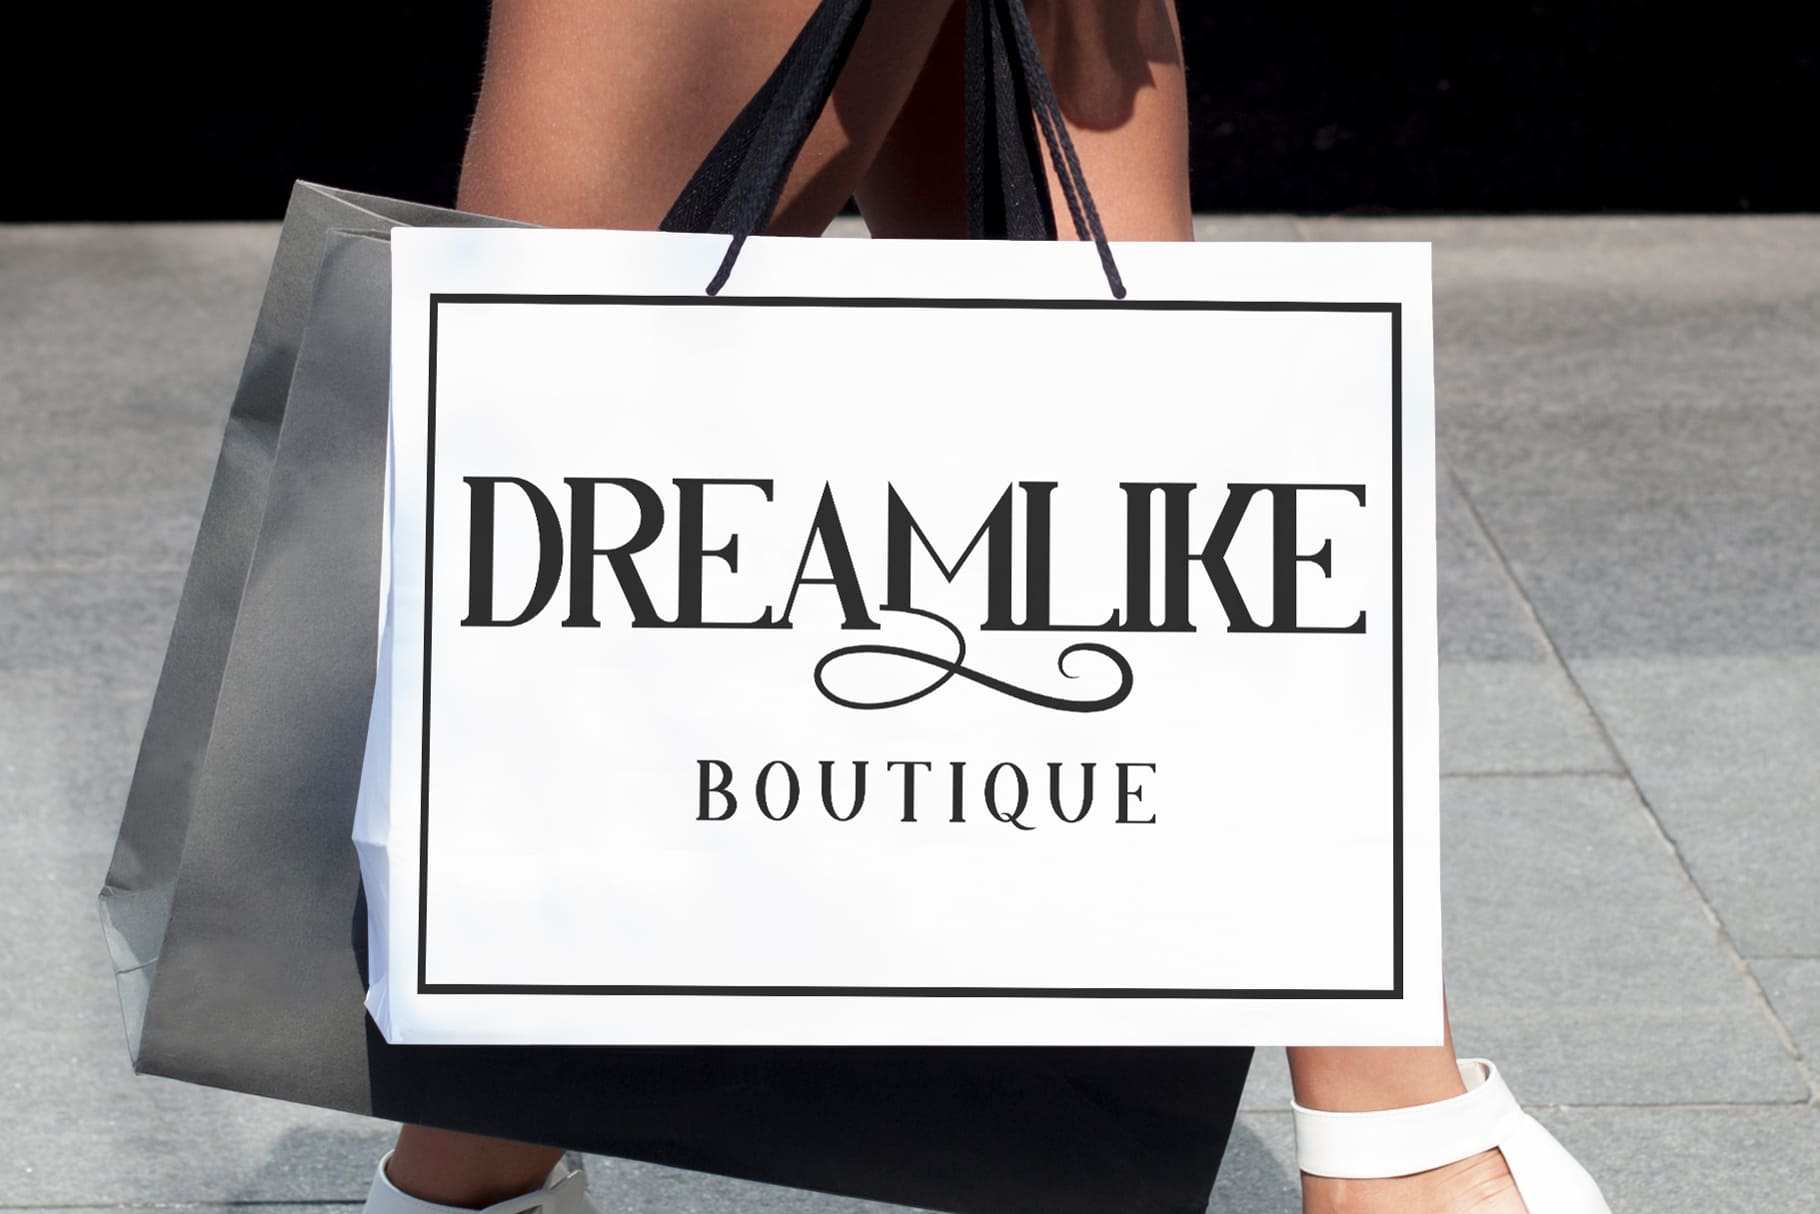 In the style of the best boutiques - the unfolding and laconic inscription on the branded bag.